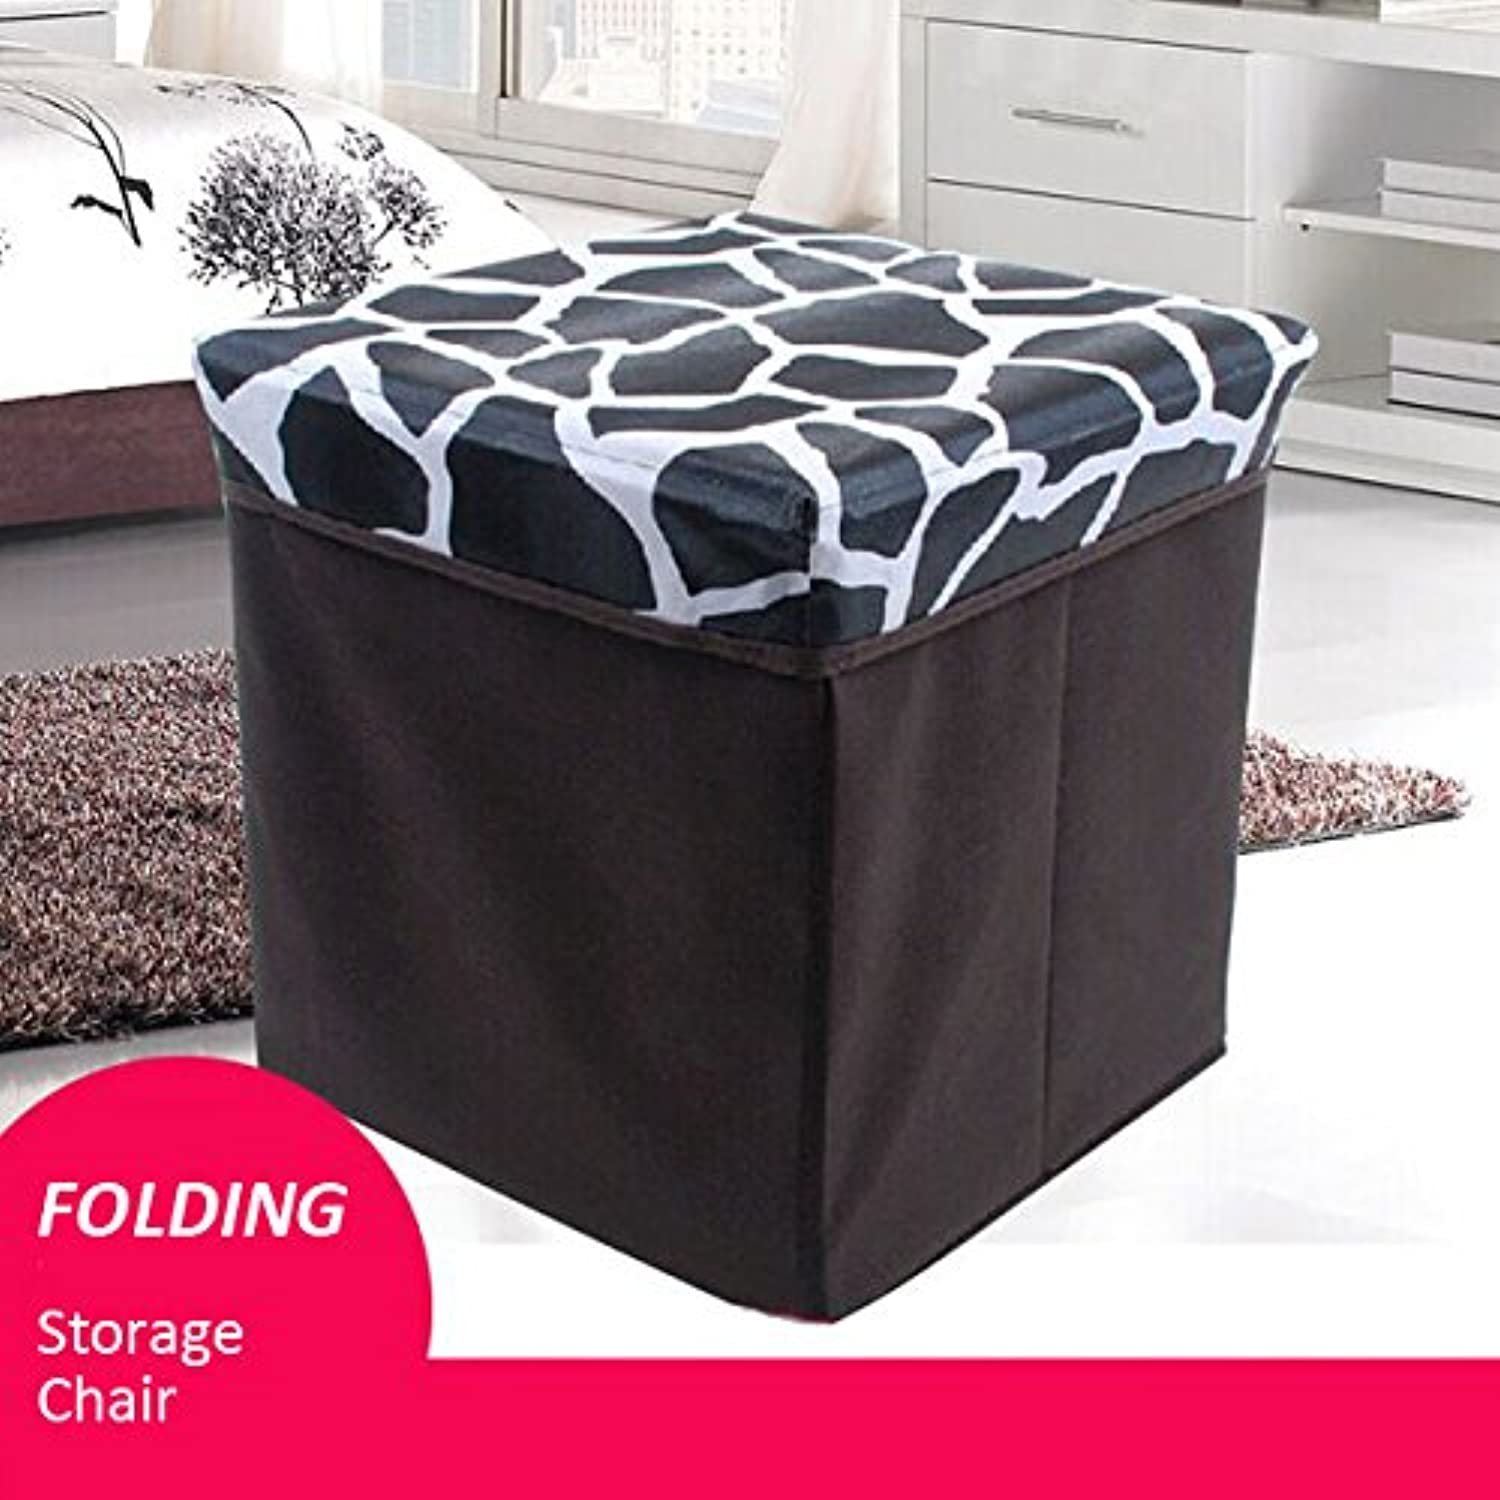 GD Multifunctional Folding Storage Chair Box Toy shoes Leather Storage Chair Pattern Black & White Check Pattern Stone